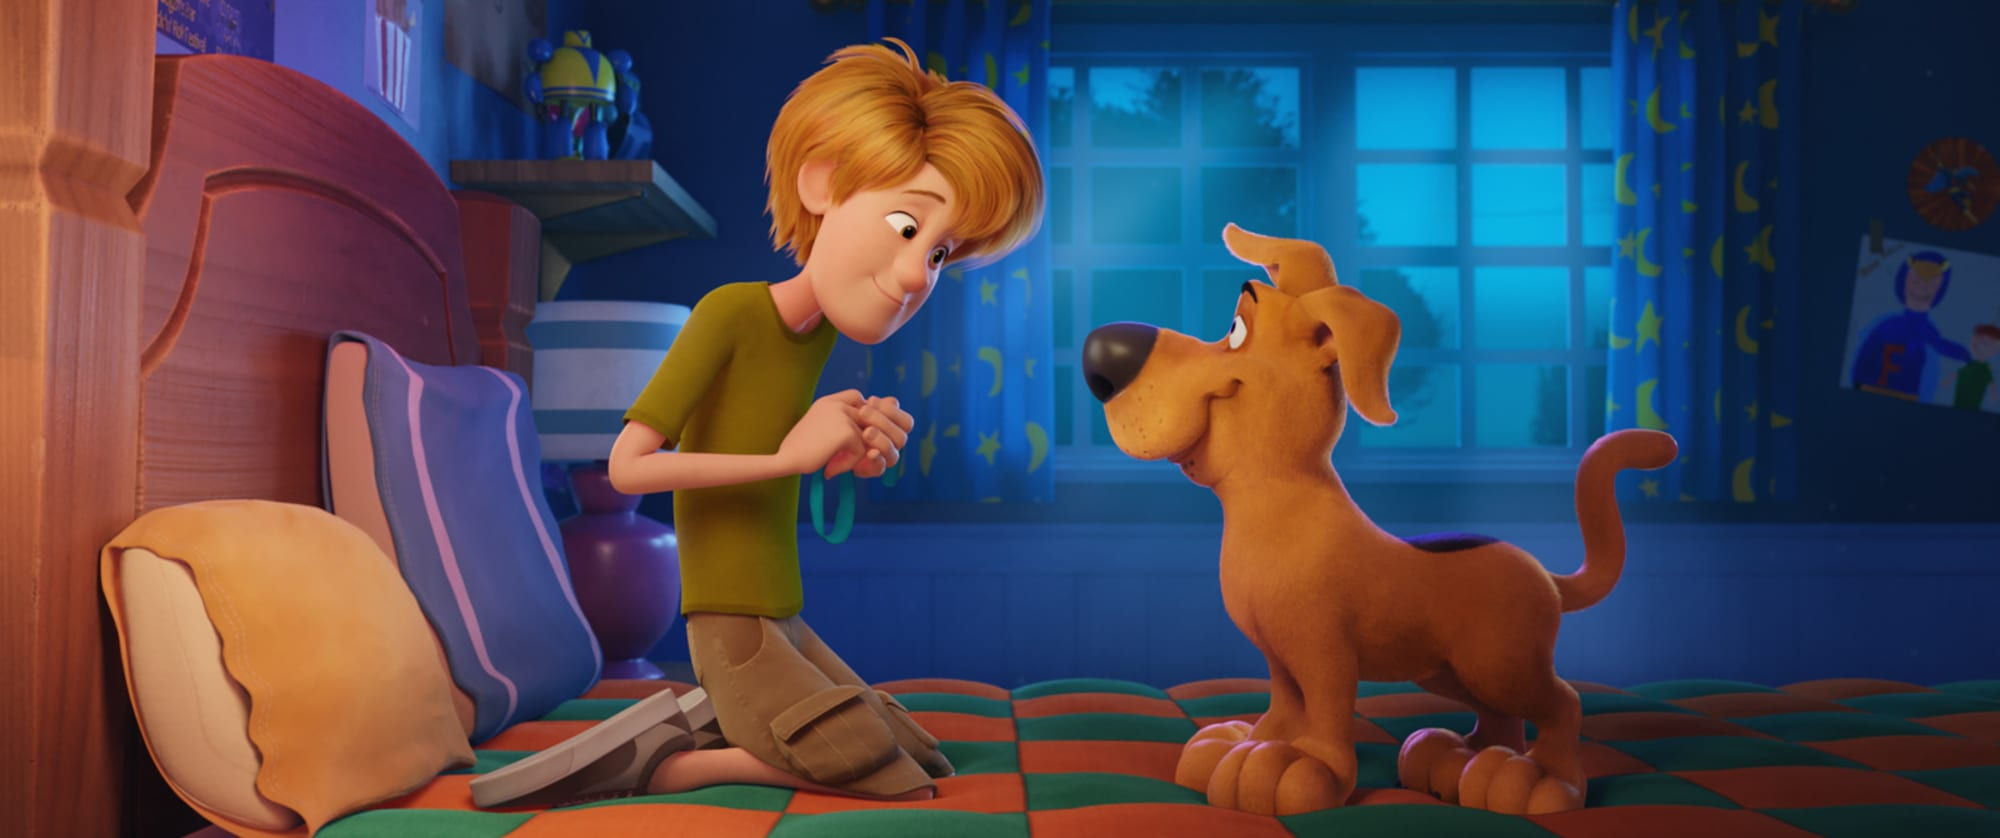 Scoob! is skipping theaters: Can you watch on Amazon Video?